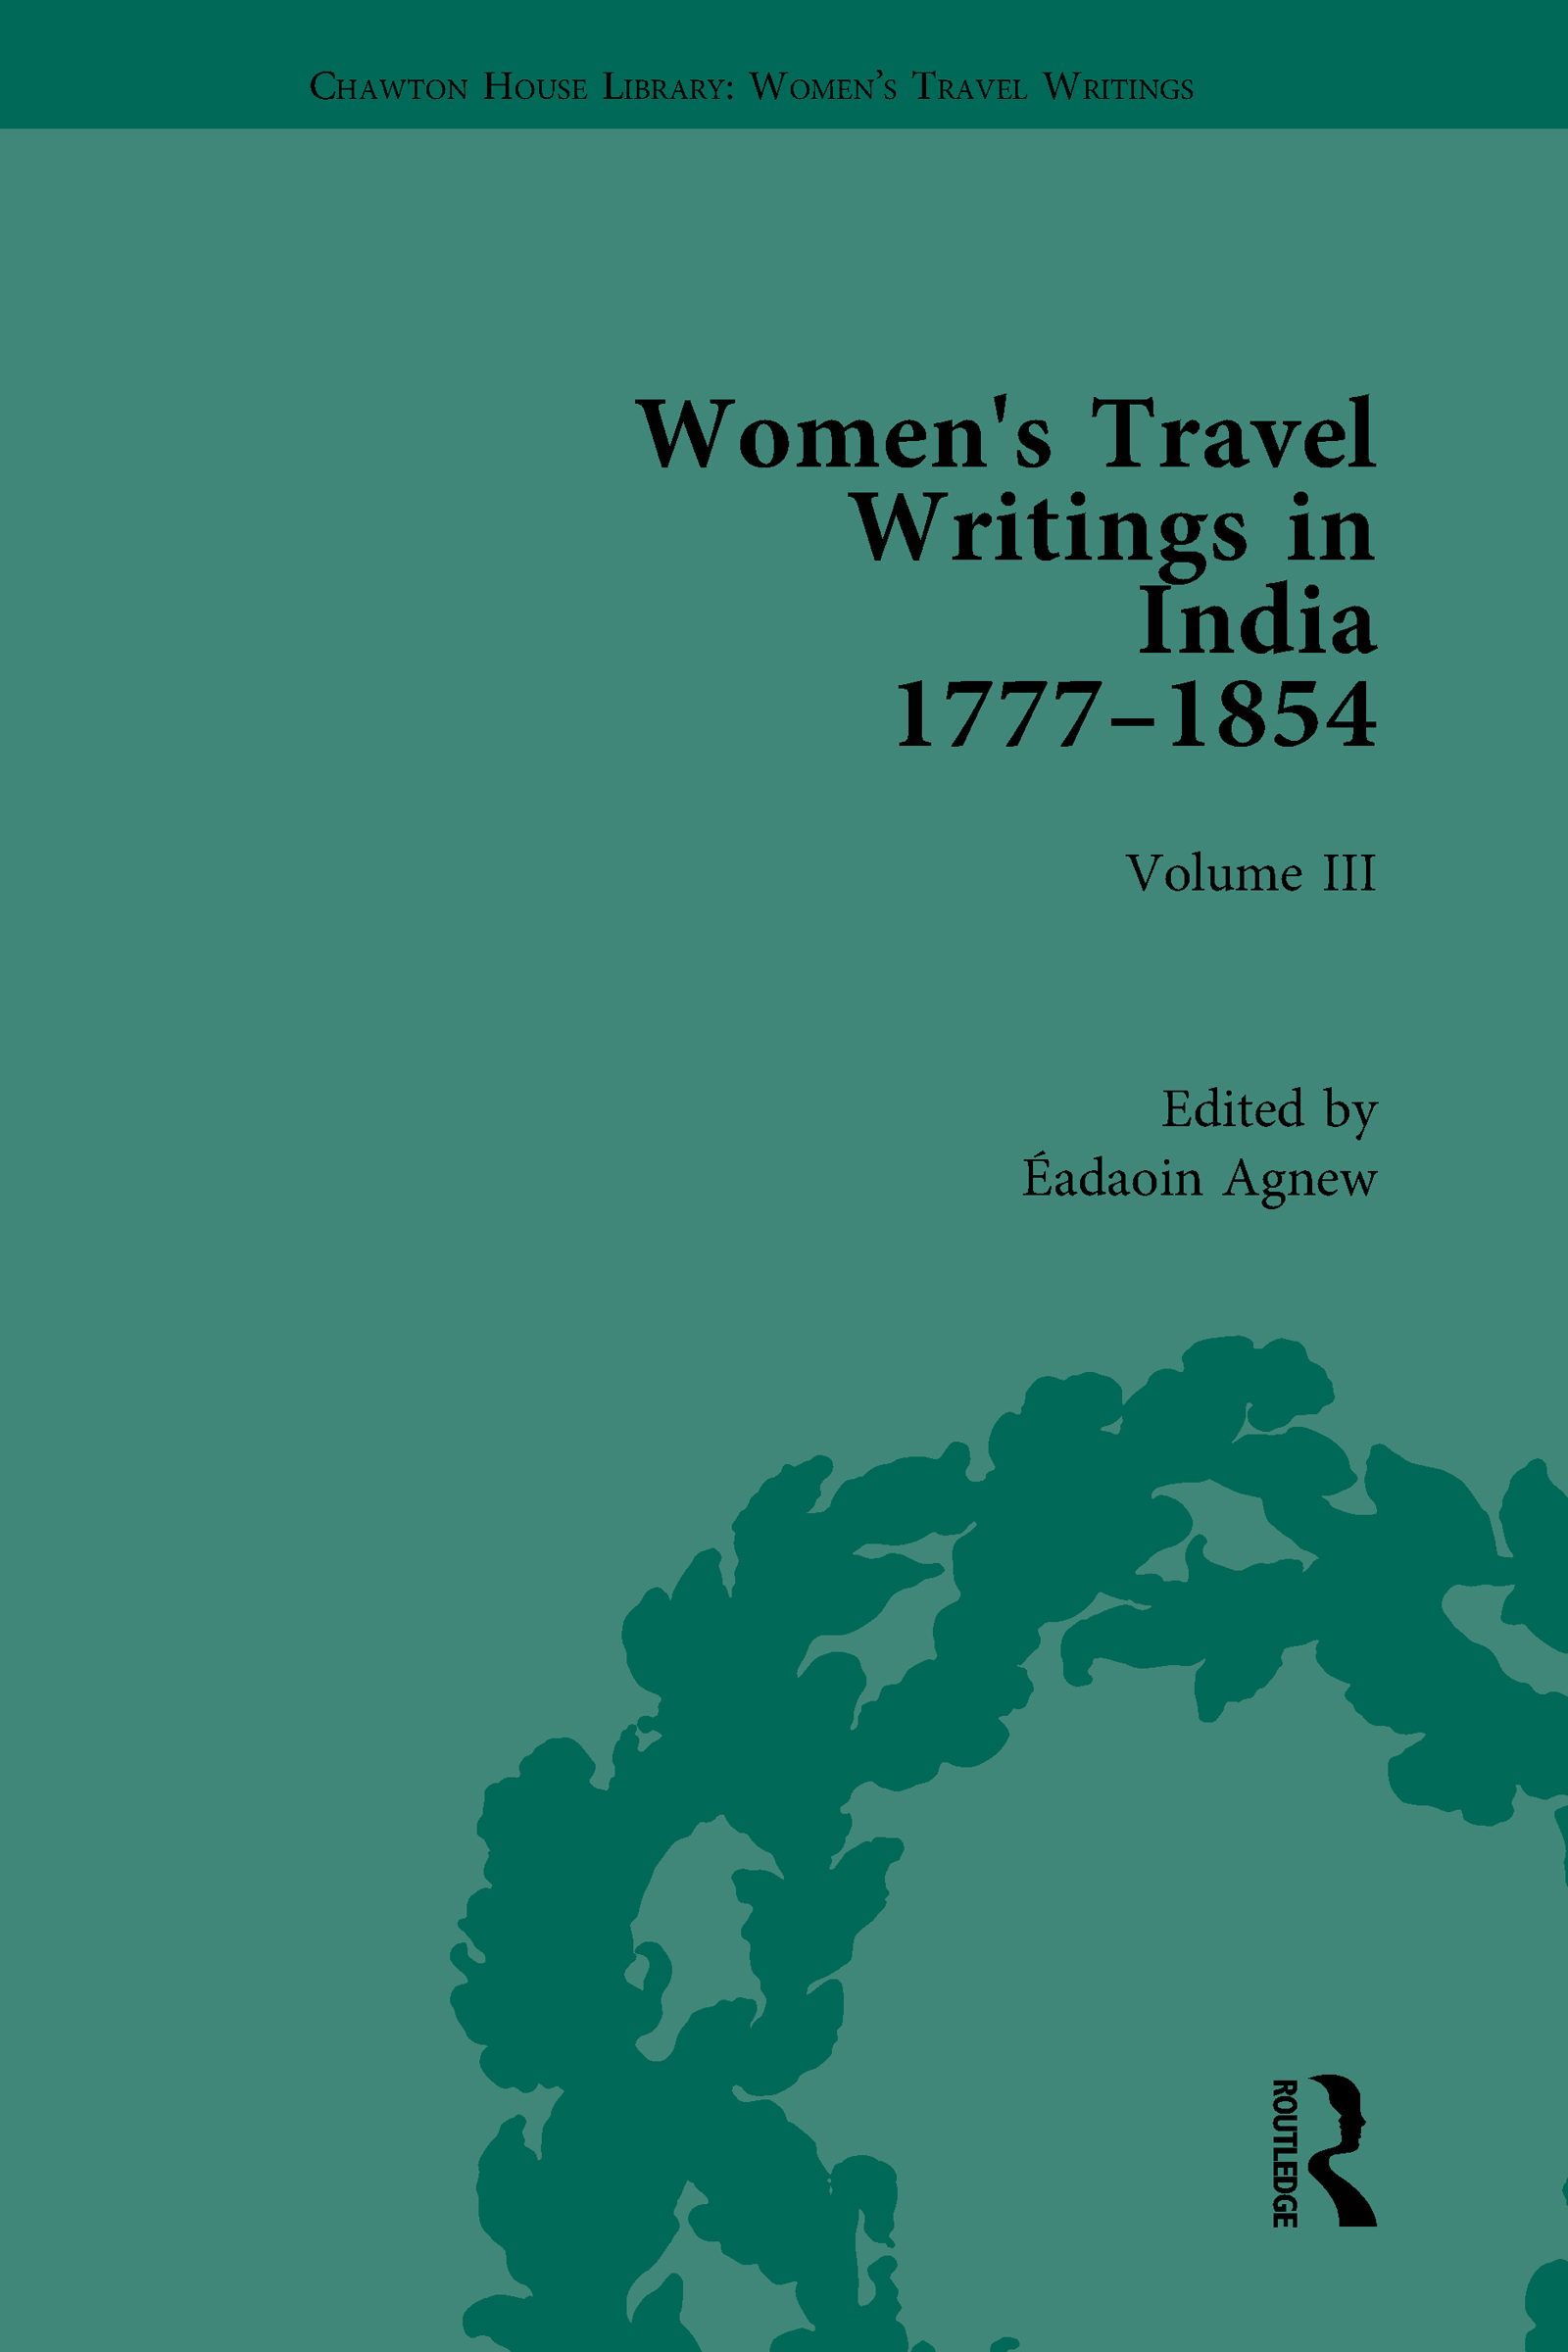 Women's Travel Writings in India 1777-1845: Volume III: Mrs A. Deane, A Tour through the Upper Provinces of Hindustan (1823); and Julia Charlotte Maitland, Letters from Madras During the Years 1836-39, by a Lady (1843) book cover